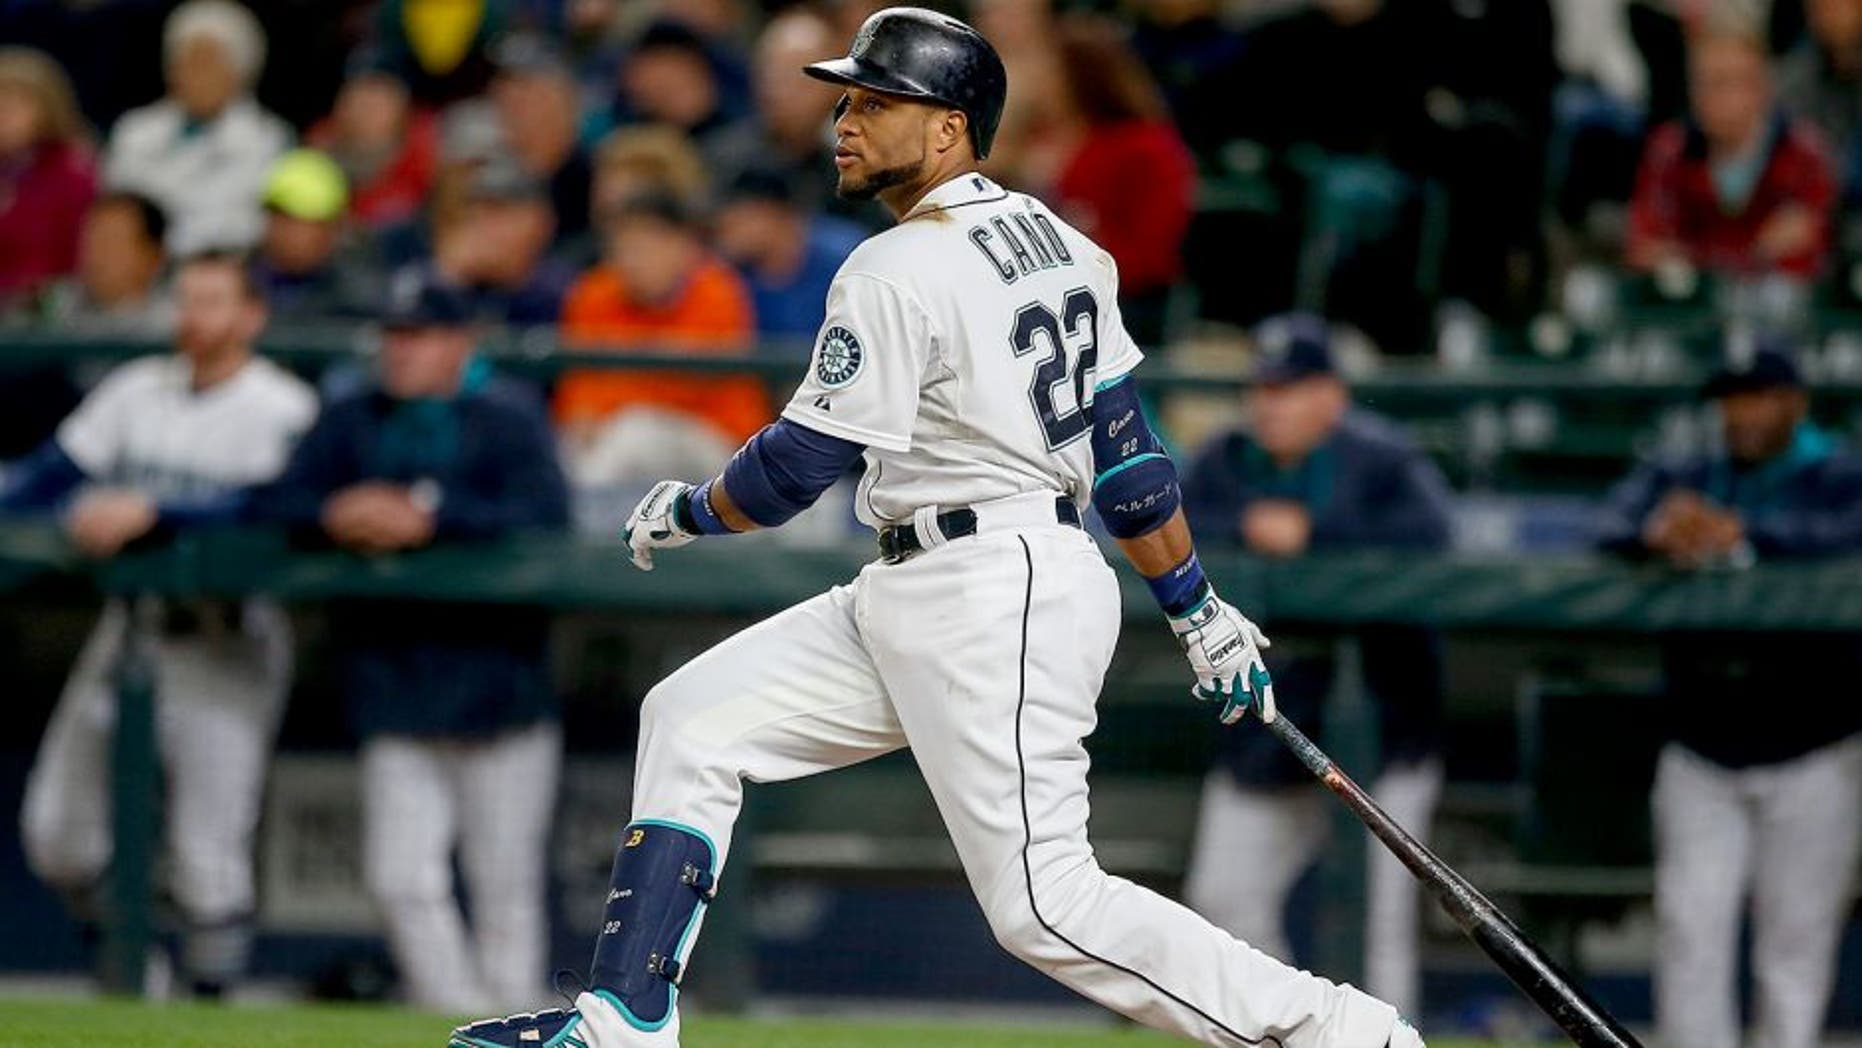 SEATTLE, WA - SEPTEMBER 28: Robinson Cano #22 of the Seattle Mariners singles in the fourth inning against the Houston Astros at Safeco Field on September 28, 2015 in Seattle, Washington. (Photo by Otto Greule Jr/Getty Images)